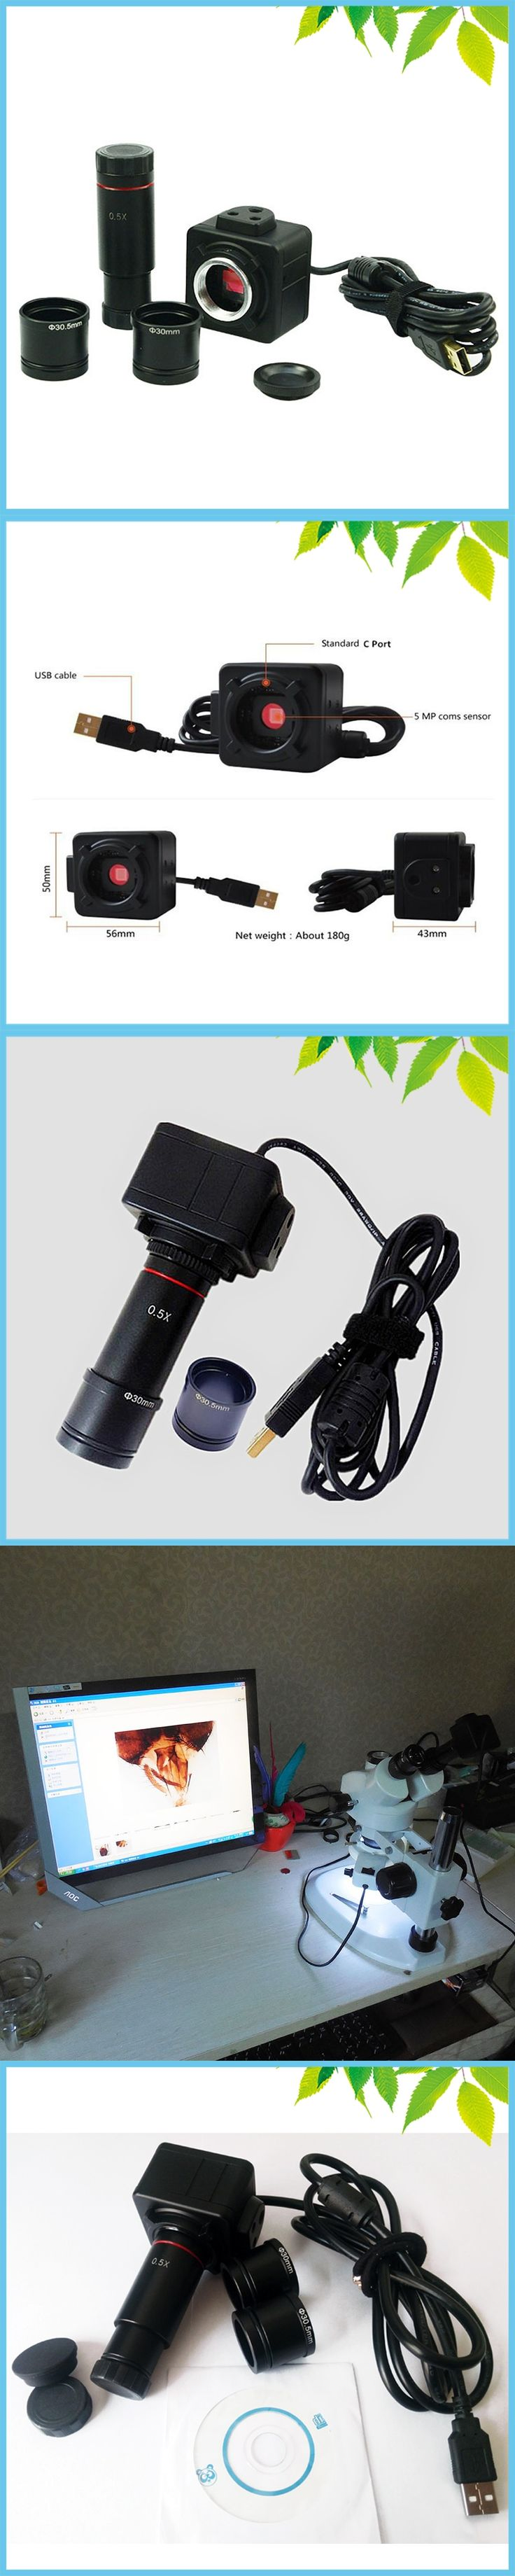 5MP Industrial Electronic Eyepiece Digital USB CMOS Video Camera with 0.5X C-Mount for Biological Stereo Microscope